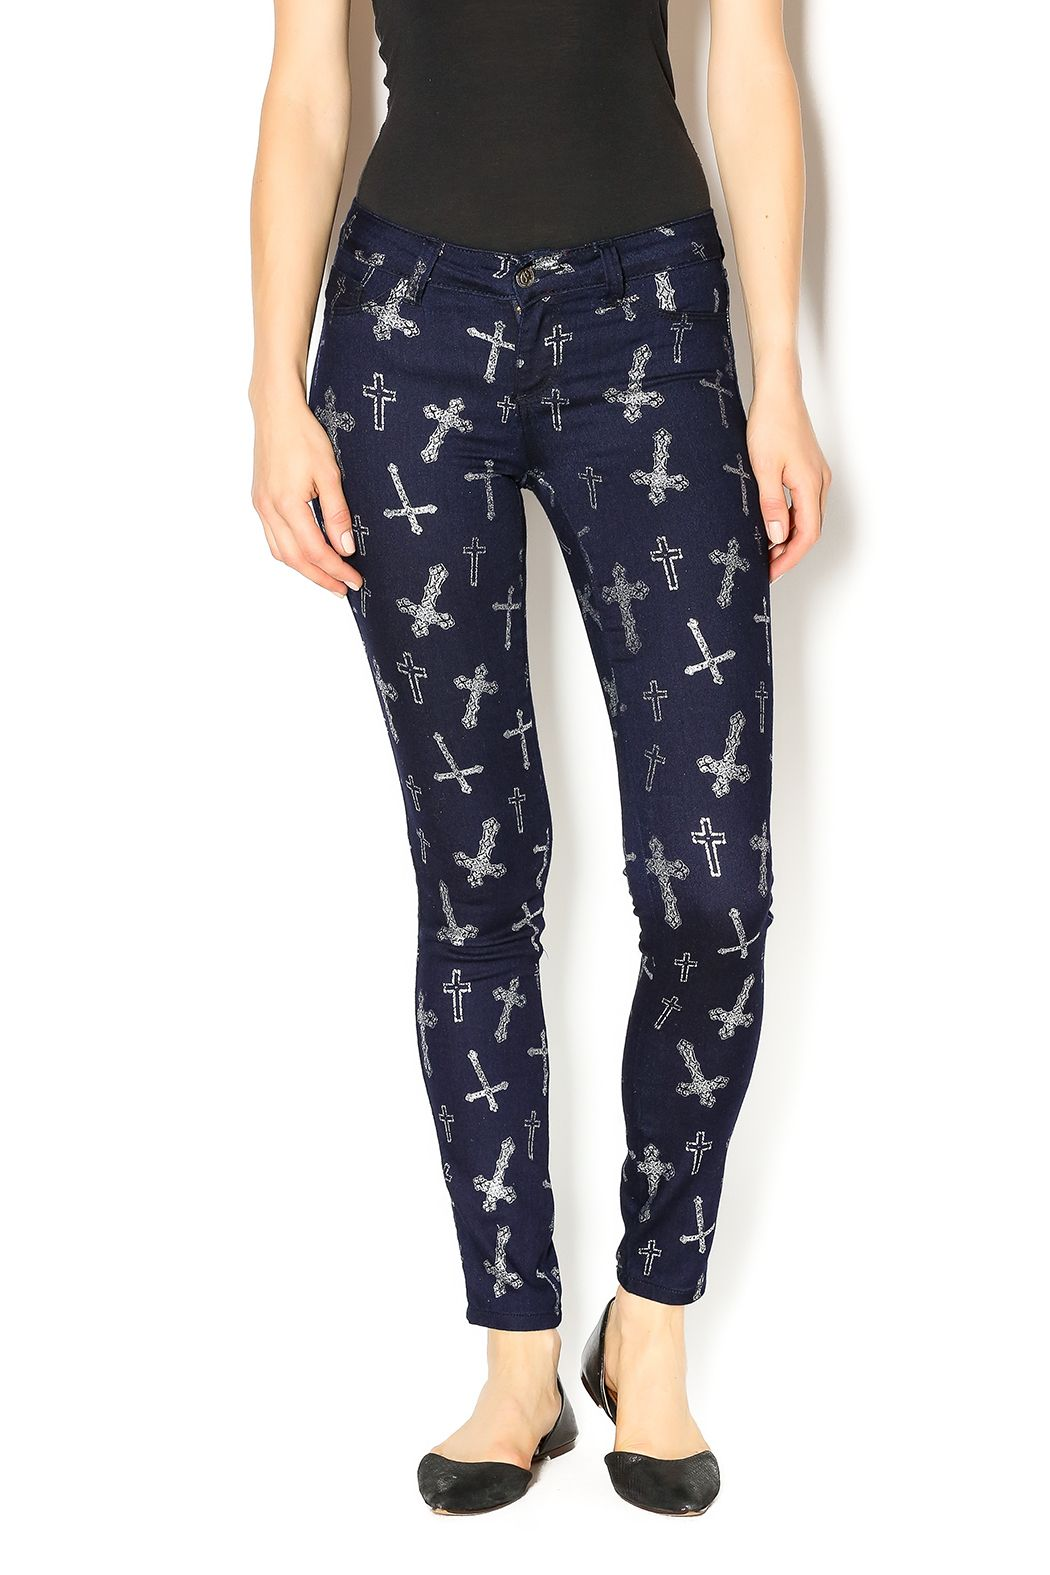 Dark blue vintage wash skinny leggings with silver crosses. Match with a  cute tank or and your favorite pair of boots. Cross Leggings by Cello. 5f2898a12b